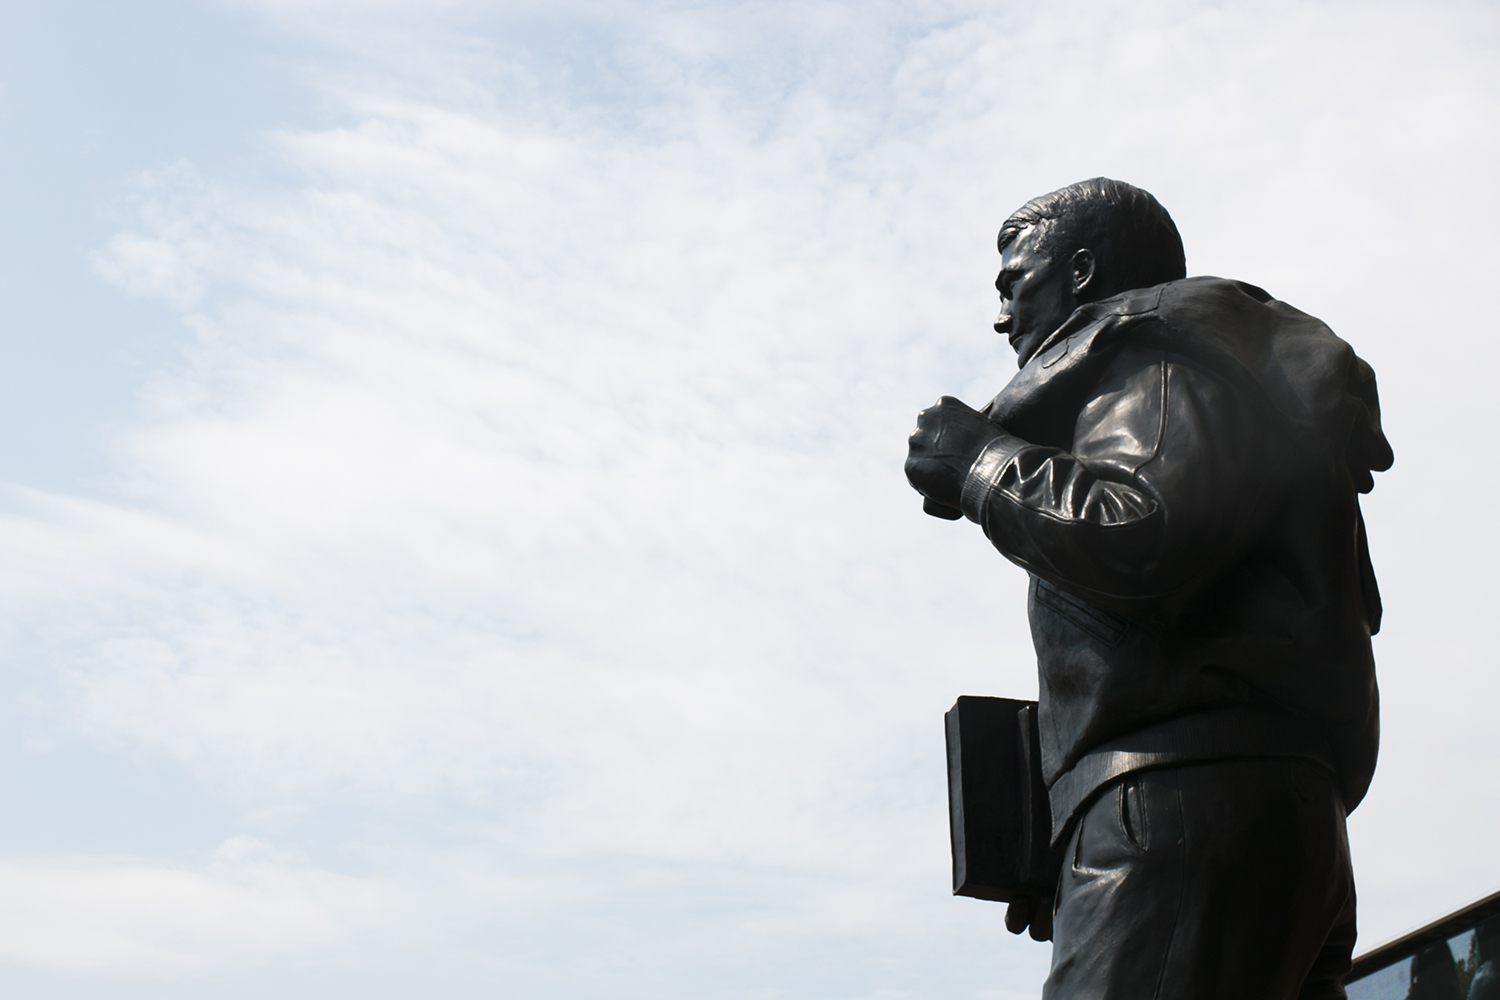 A statue of Nile Kinnick is seen before the Iowa/North Texas game in Kinnick Stadium on Saturday, Sept. 16, 2017. Iowa last played North Texas in 2015 where they defeated them, 62-16. (Joseph Cress/The Daily Iowan)